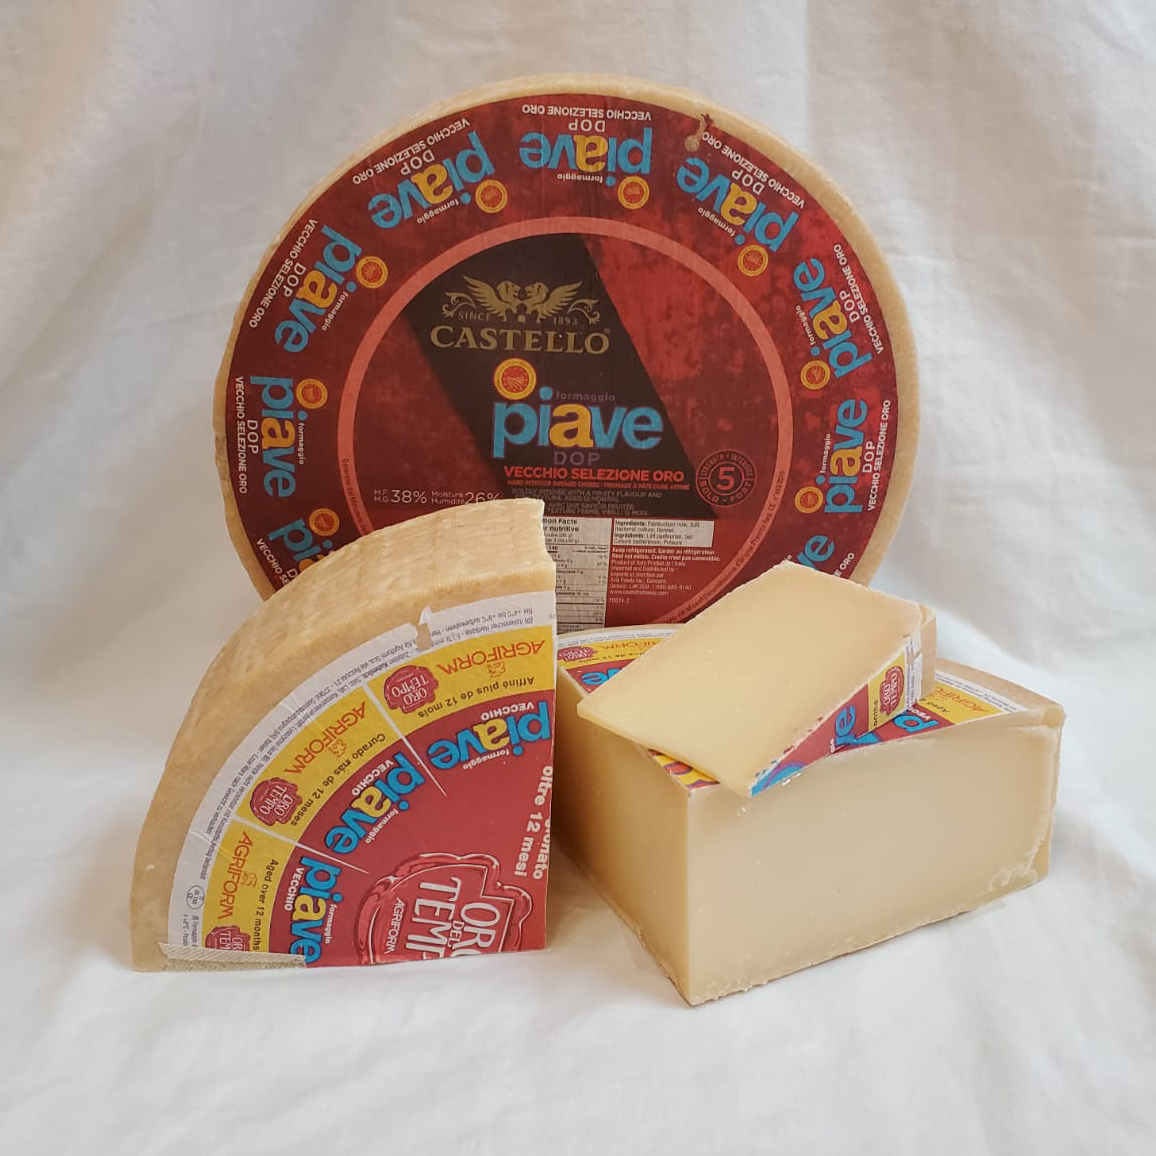 PIAVE AGED ITALY